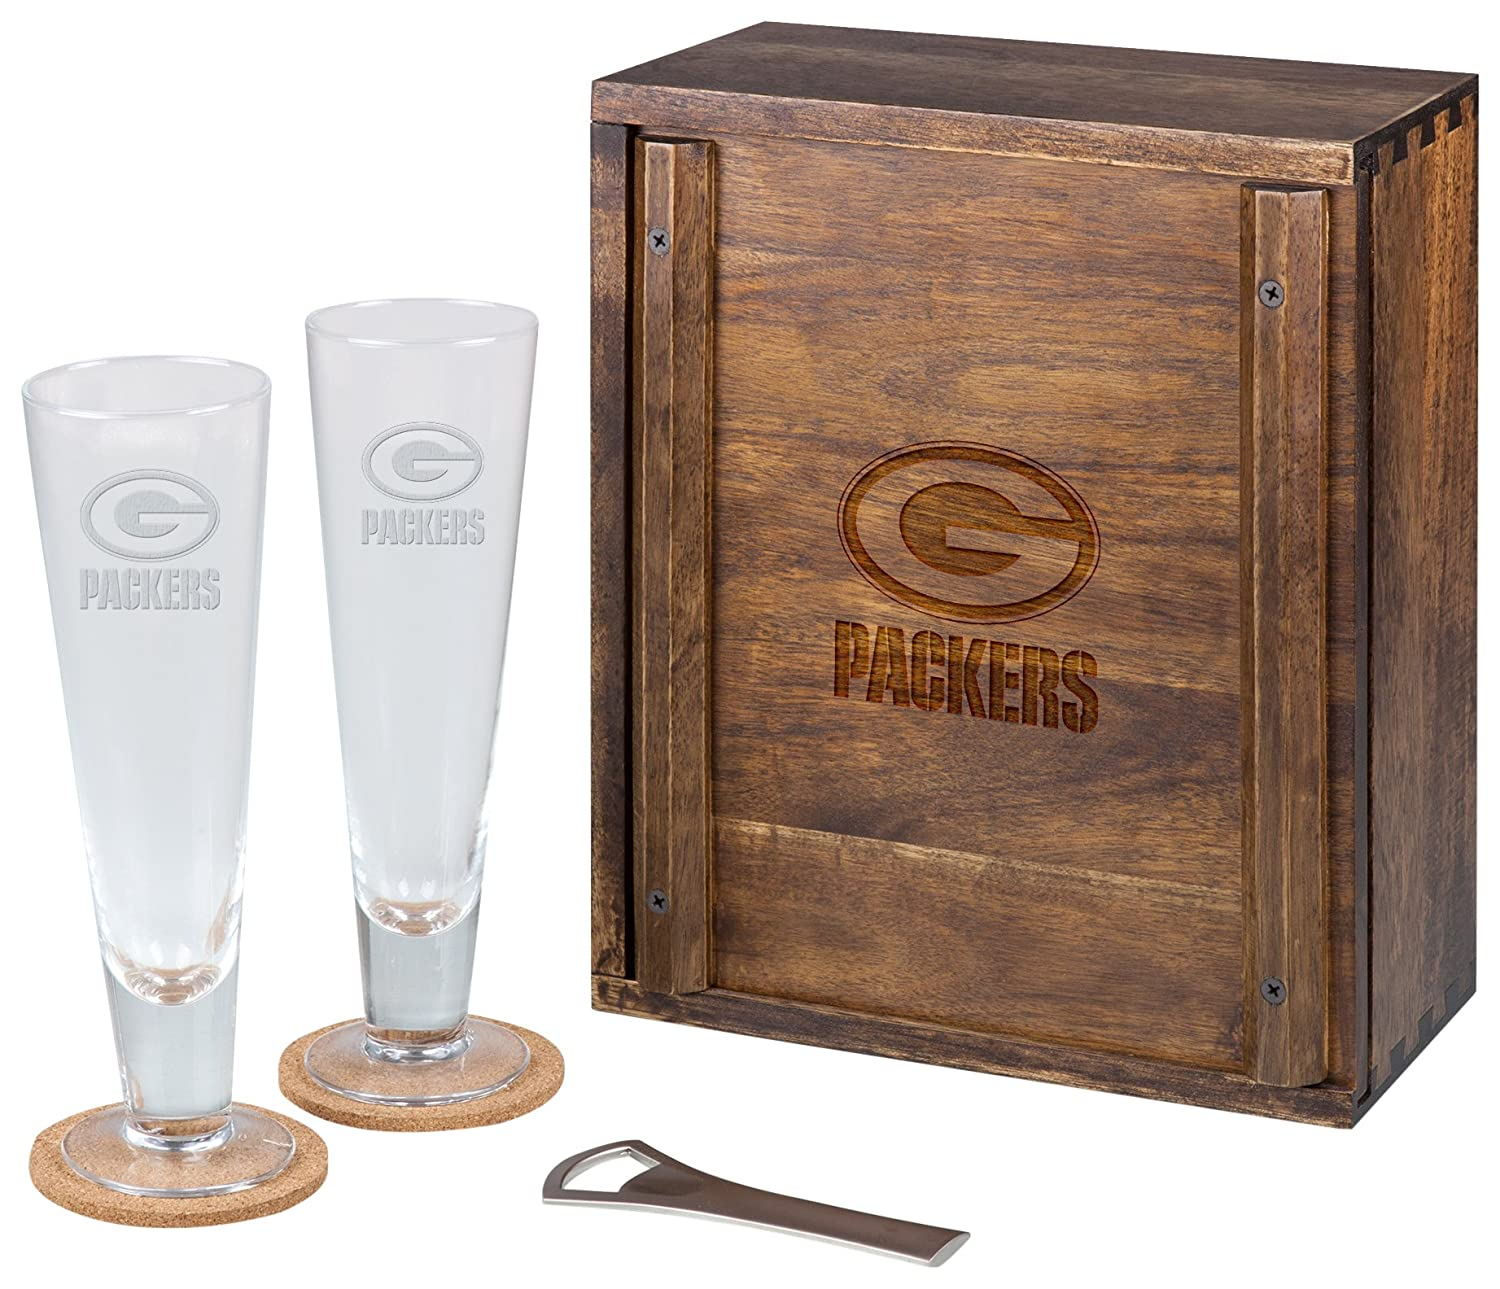 NFL Atlanta Falcons Acacia Wood Pilsner Beer Glass Gift Set Two Picnic Time 602-06-512-023-2